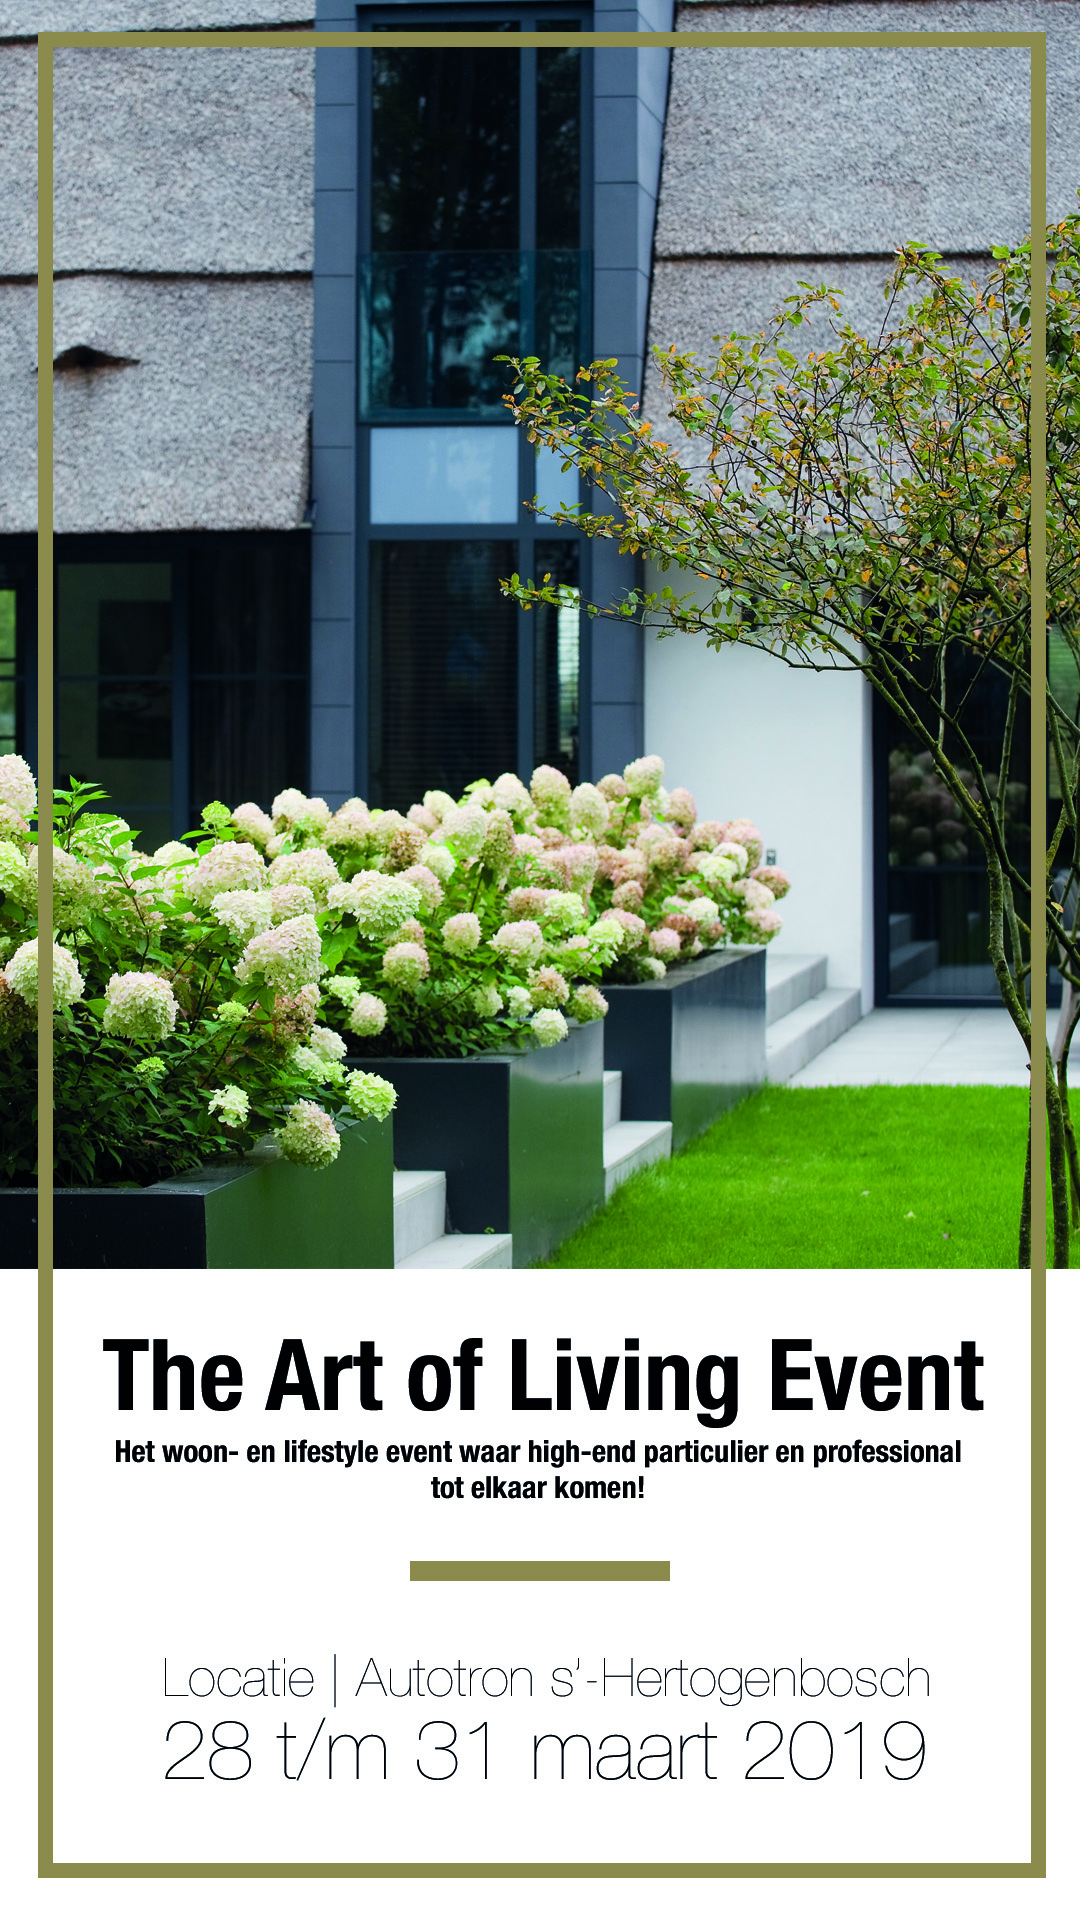 THE ART OF LIVING EVENT